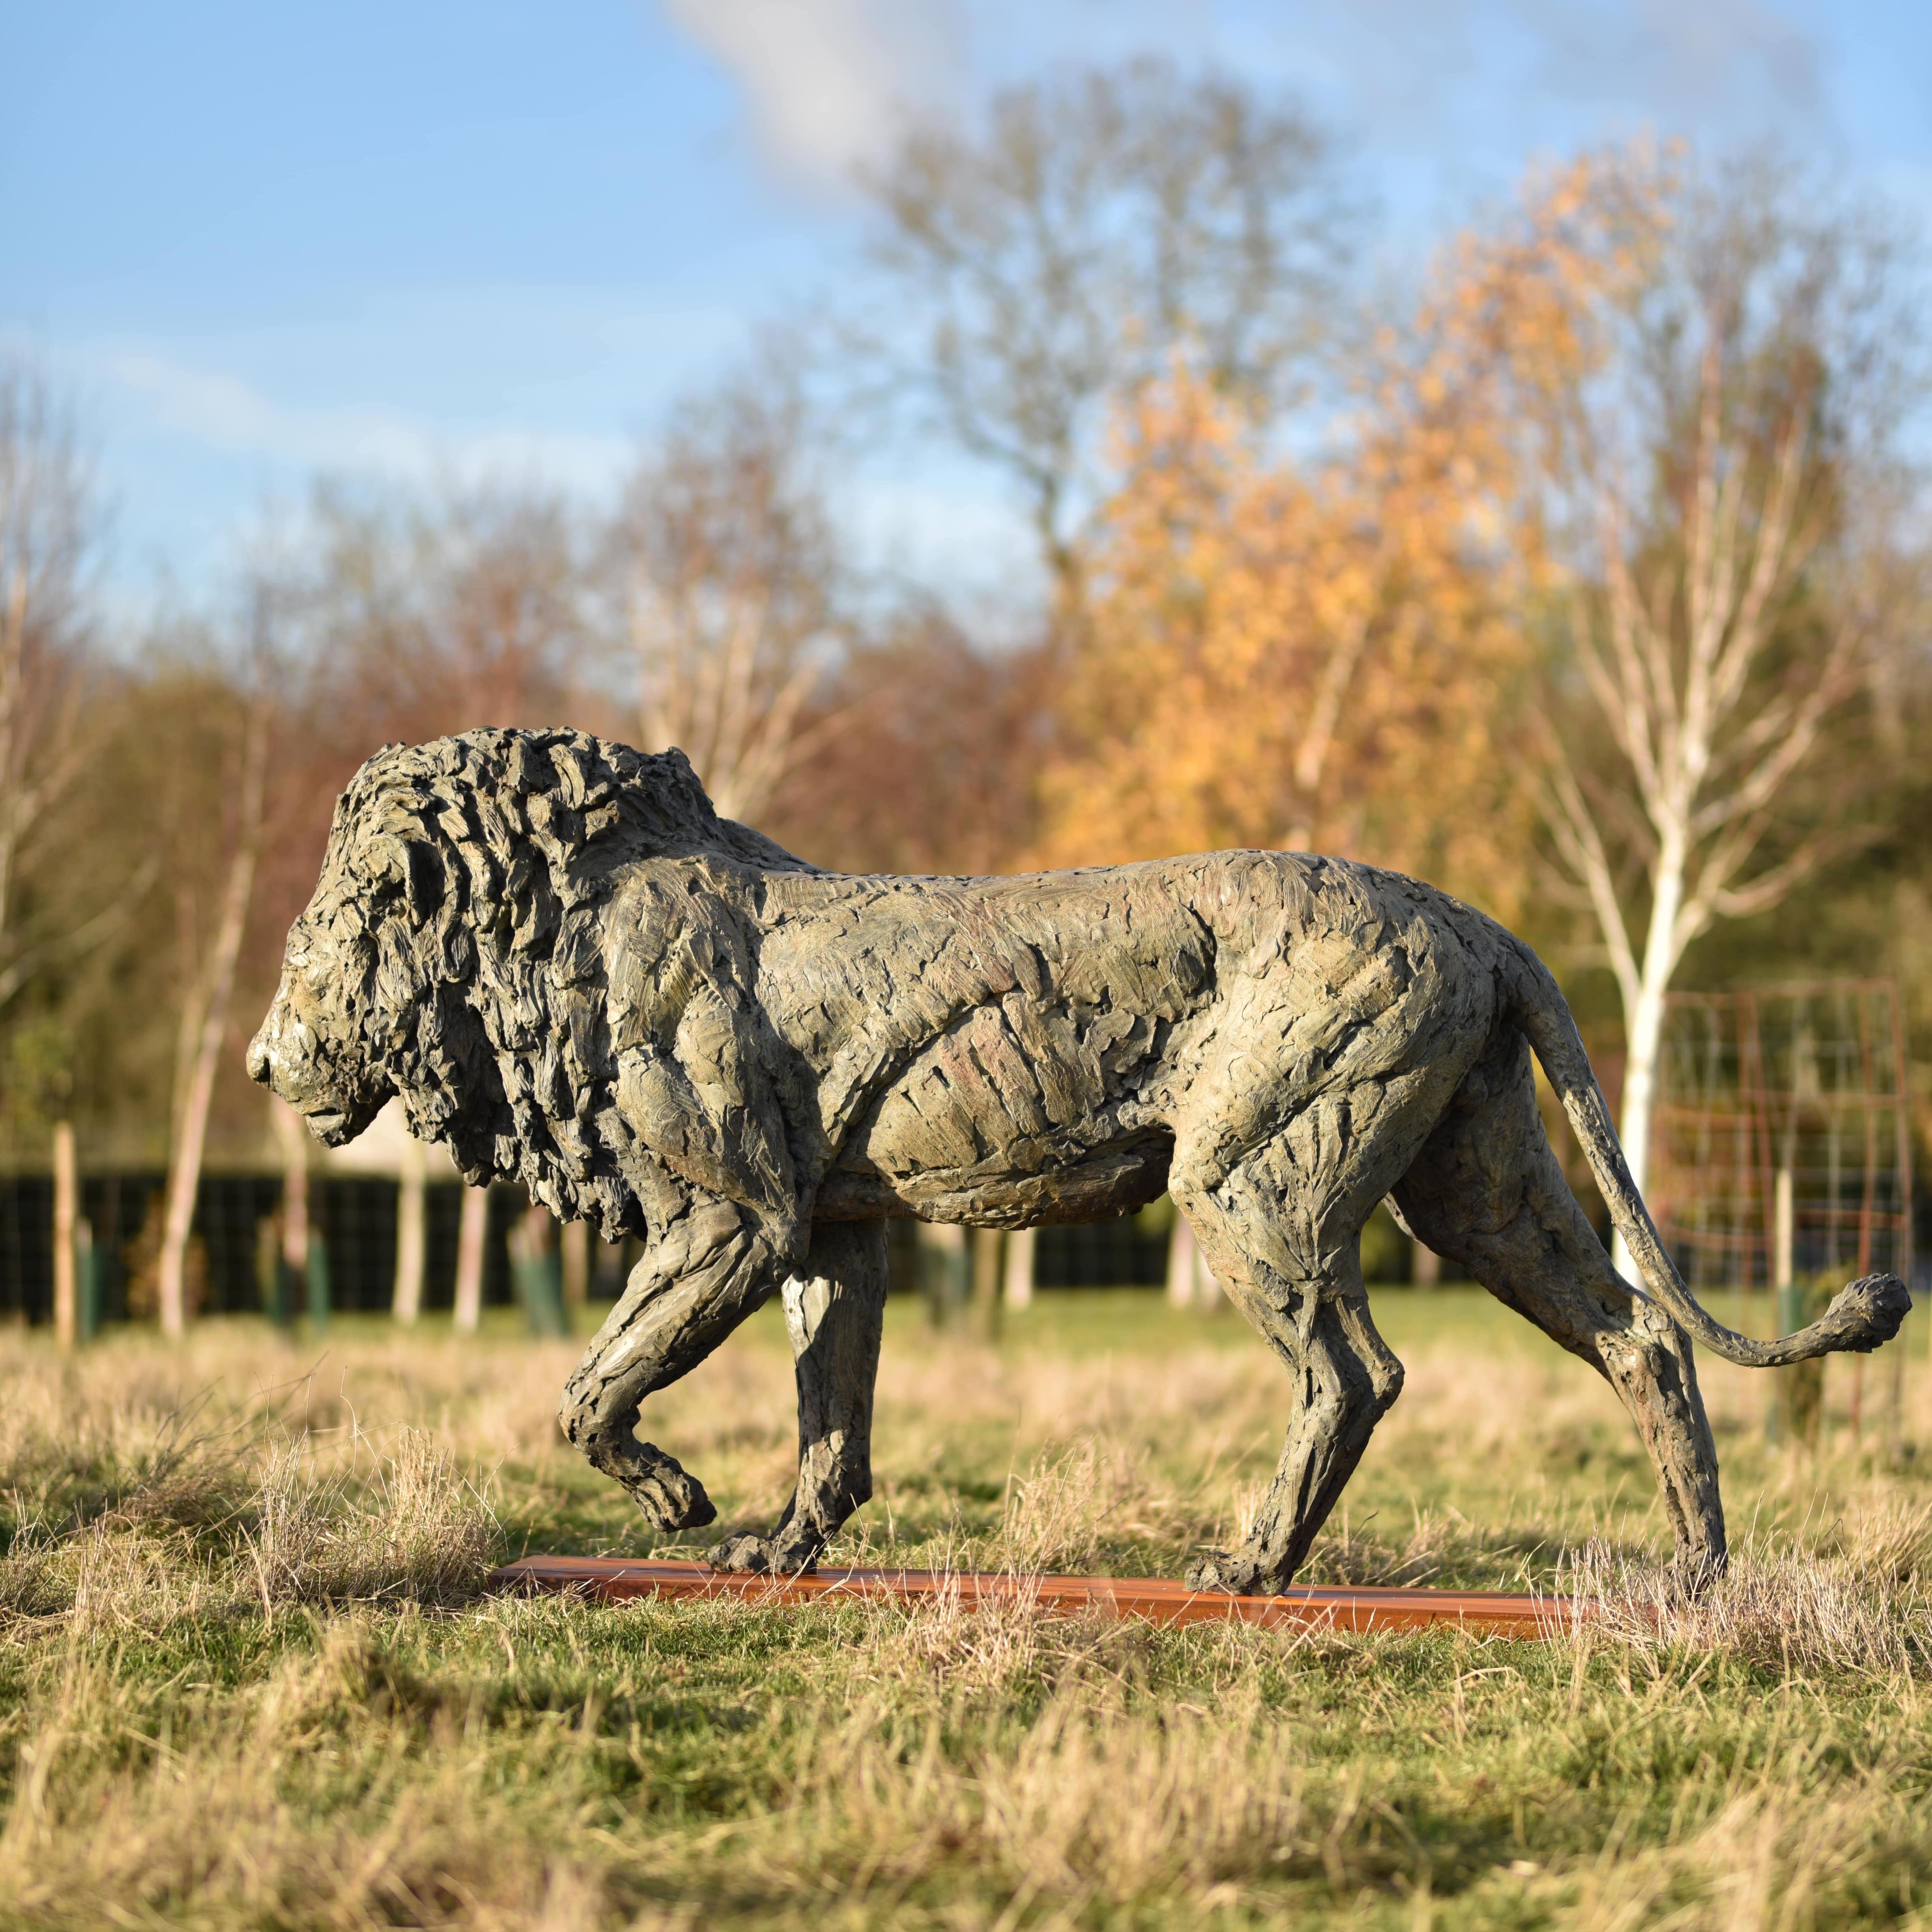 Lion by Hamish Mackie with Muse. The Sculpture Company